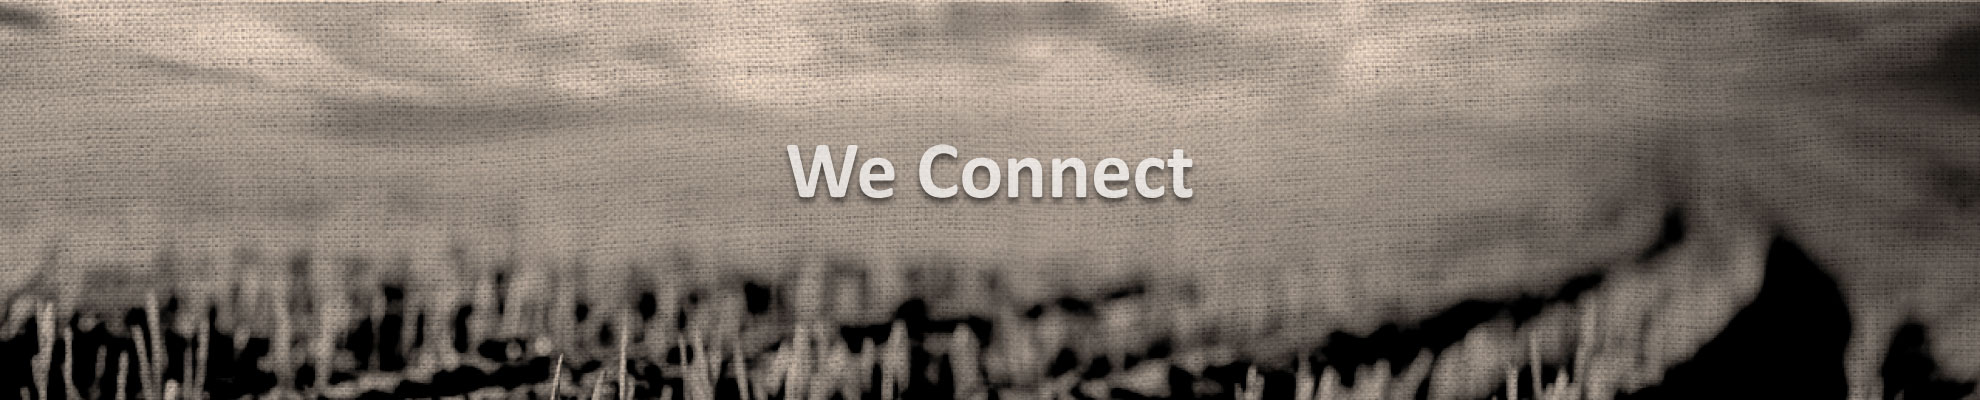 We Connect 001